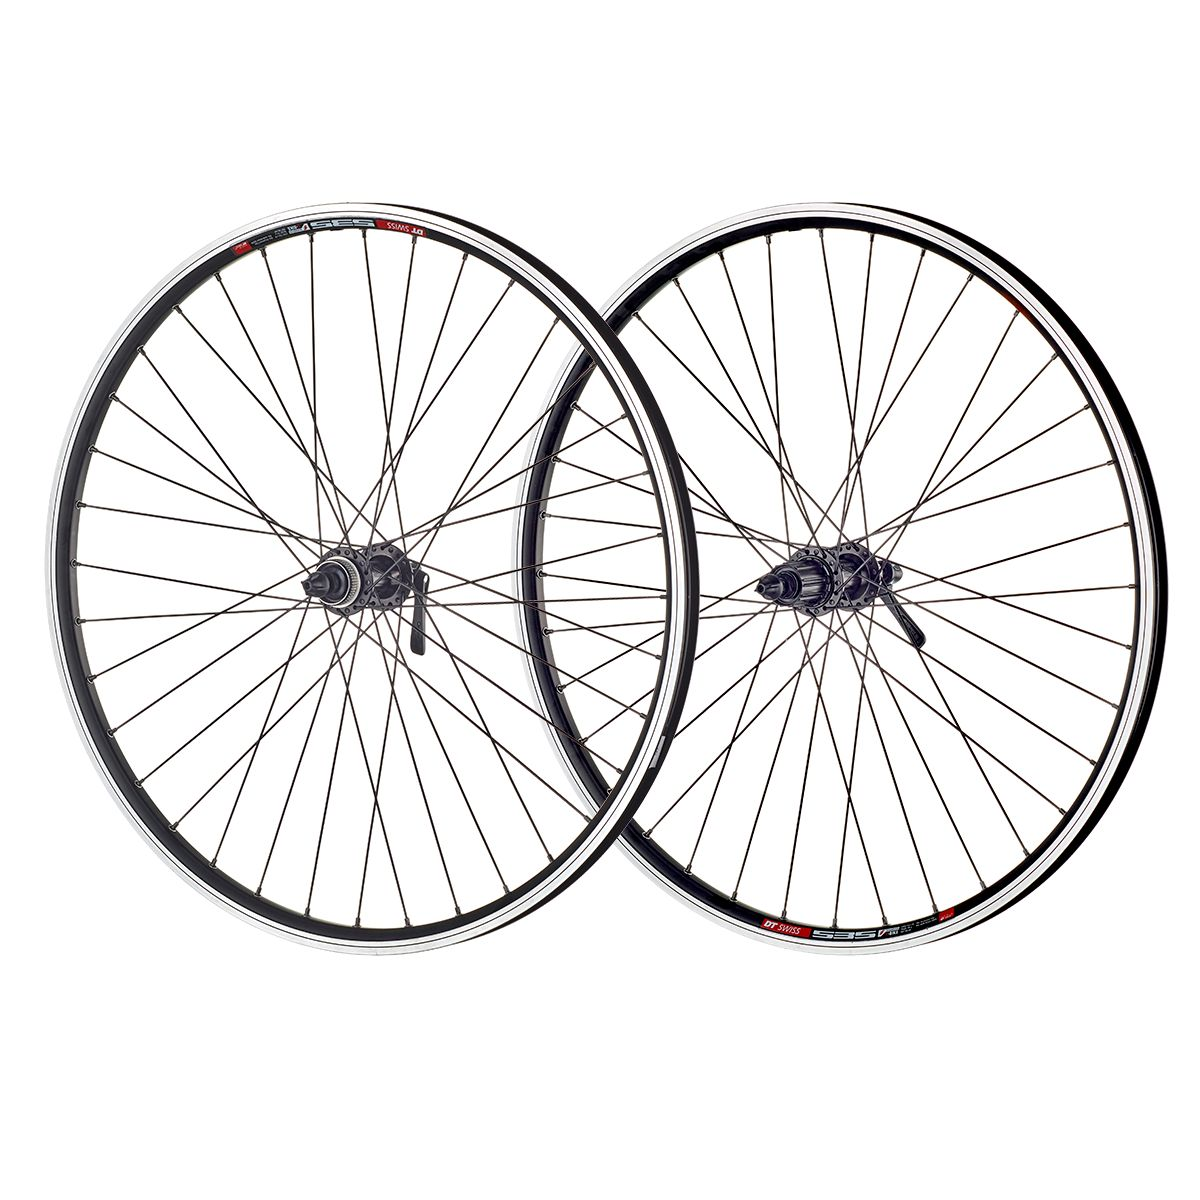 "MTB wheelset 26"" Xtreme M-ZX 535 / Shimano Deore M6000 Disc"